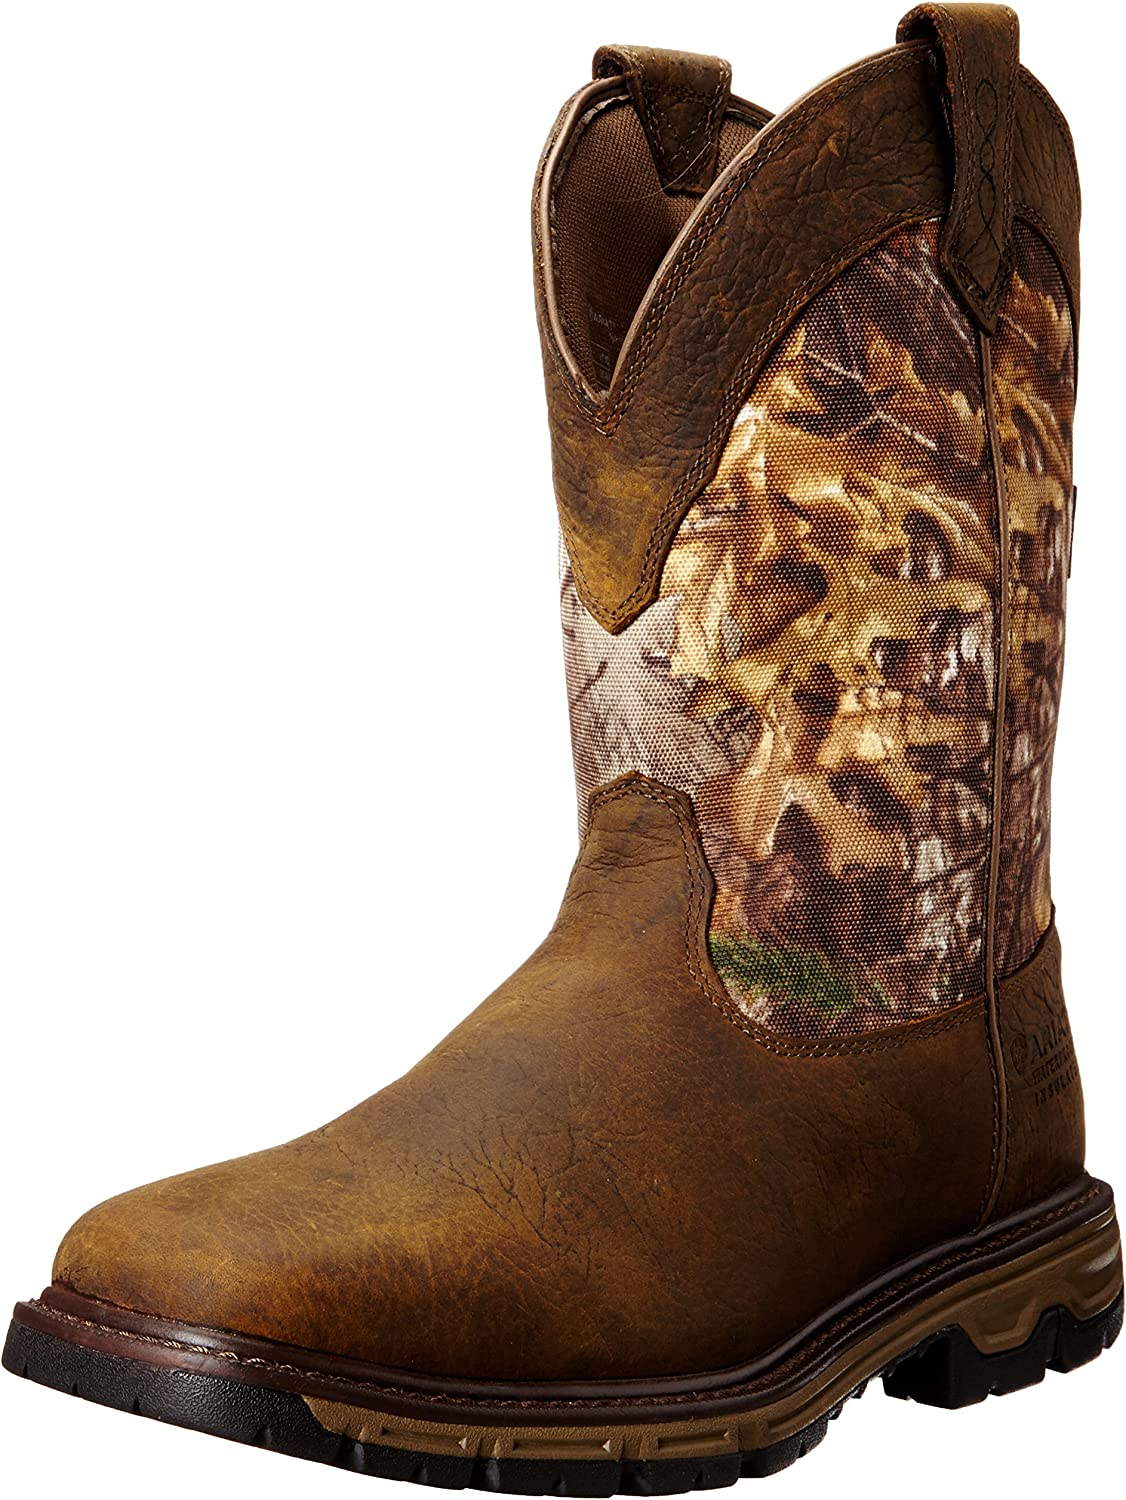 ARIAT MEN's Conquest Row -on H2O H2O H2O Isolerad cowboy Boot  kom att välja din egen sportstil